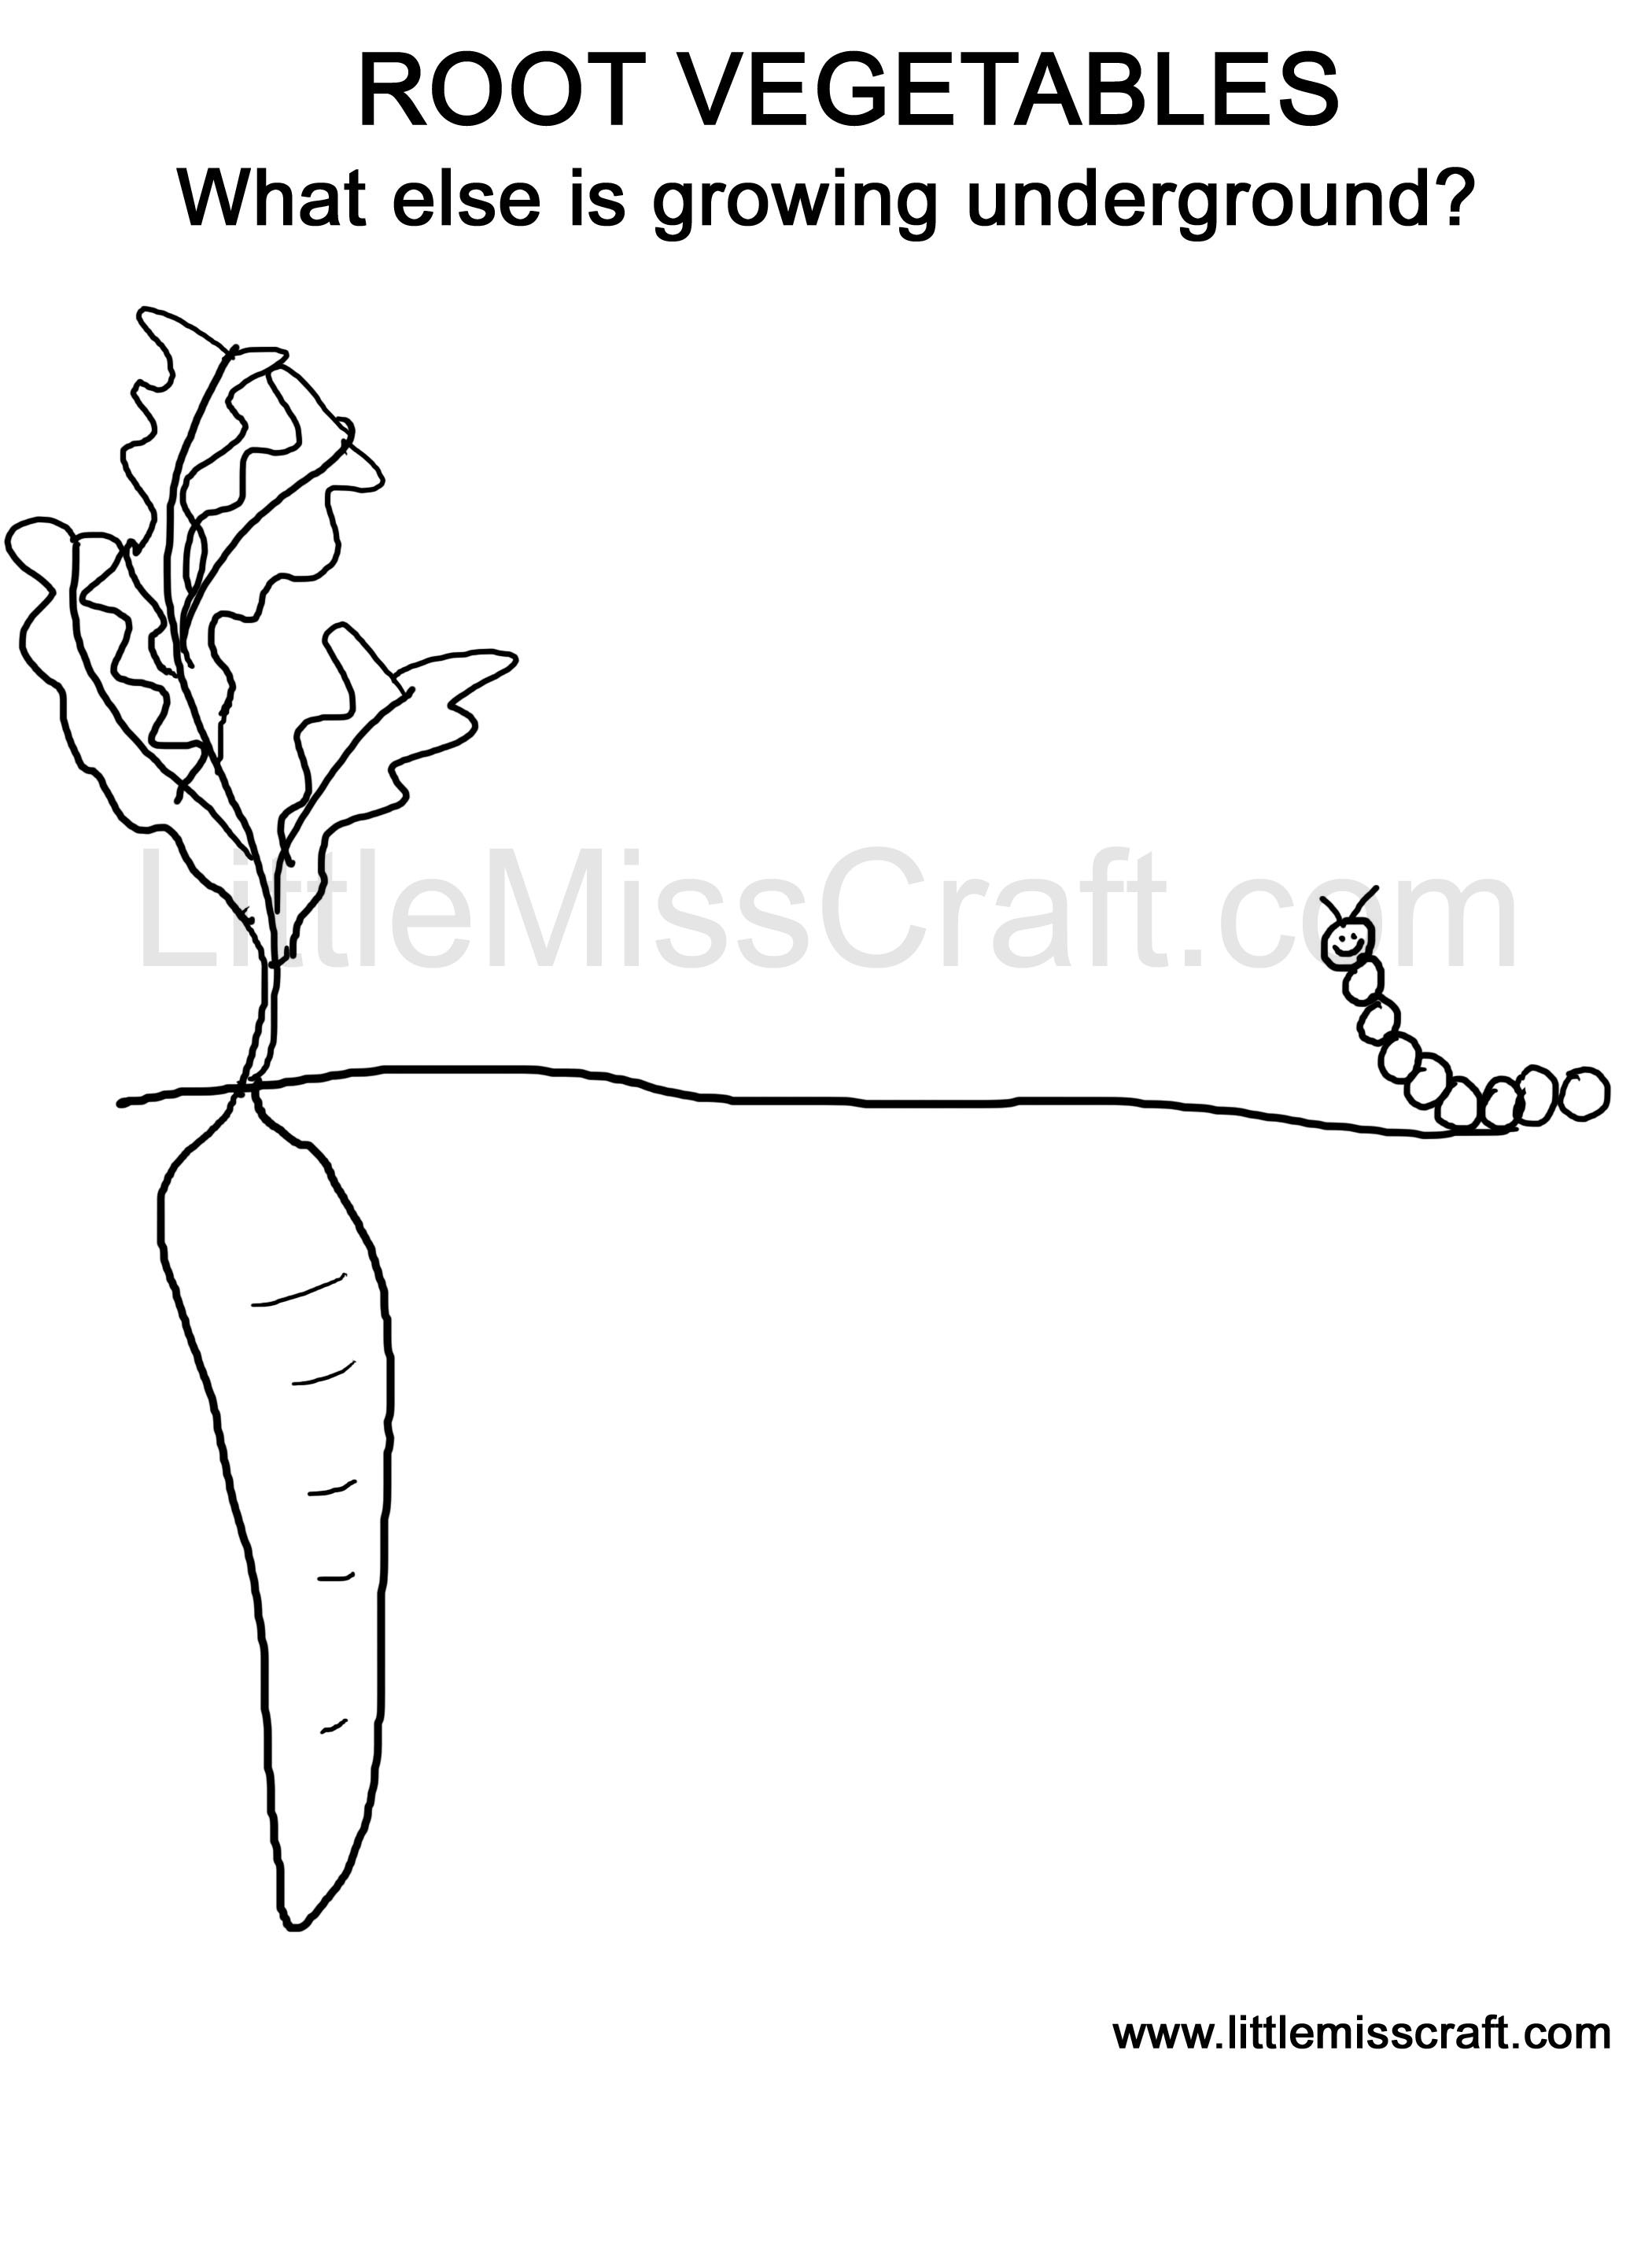 crafts growing root vegetables doodle coloring page